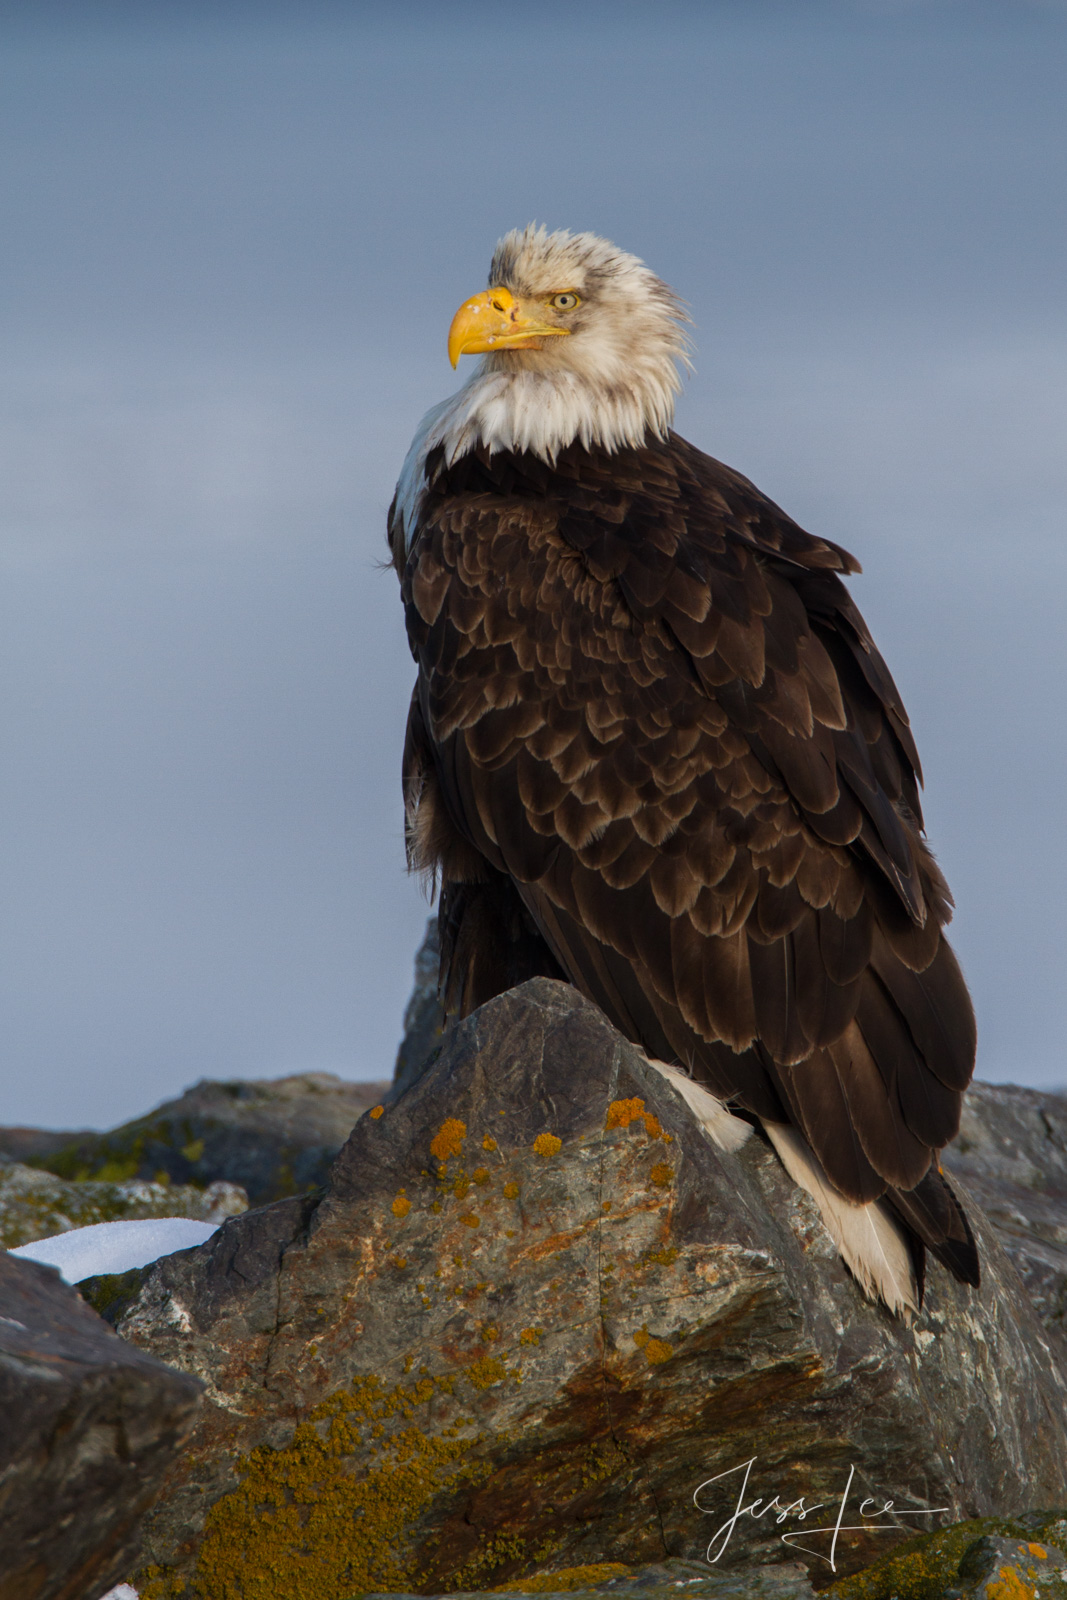 Bring home the power and beauty of the amazing fine art American Bald Eagle photograph Tough Guy by Jess Lee from his Wildlife...